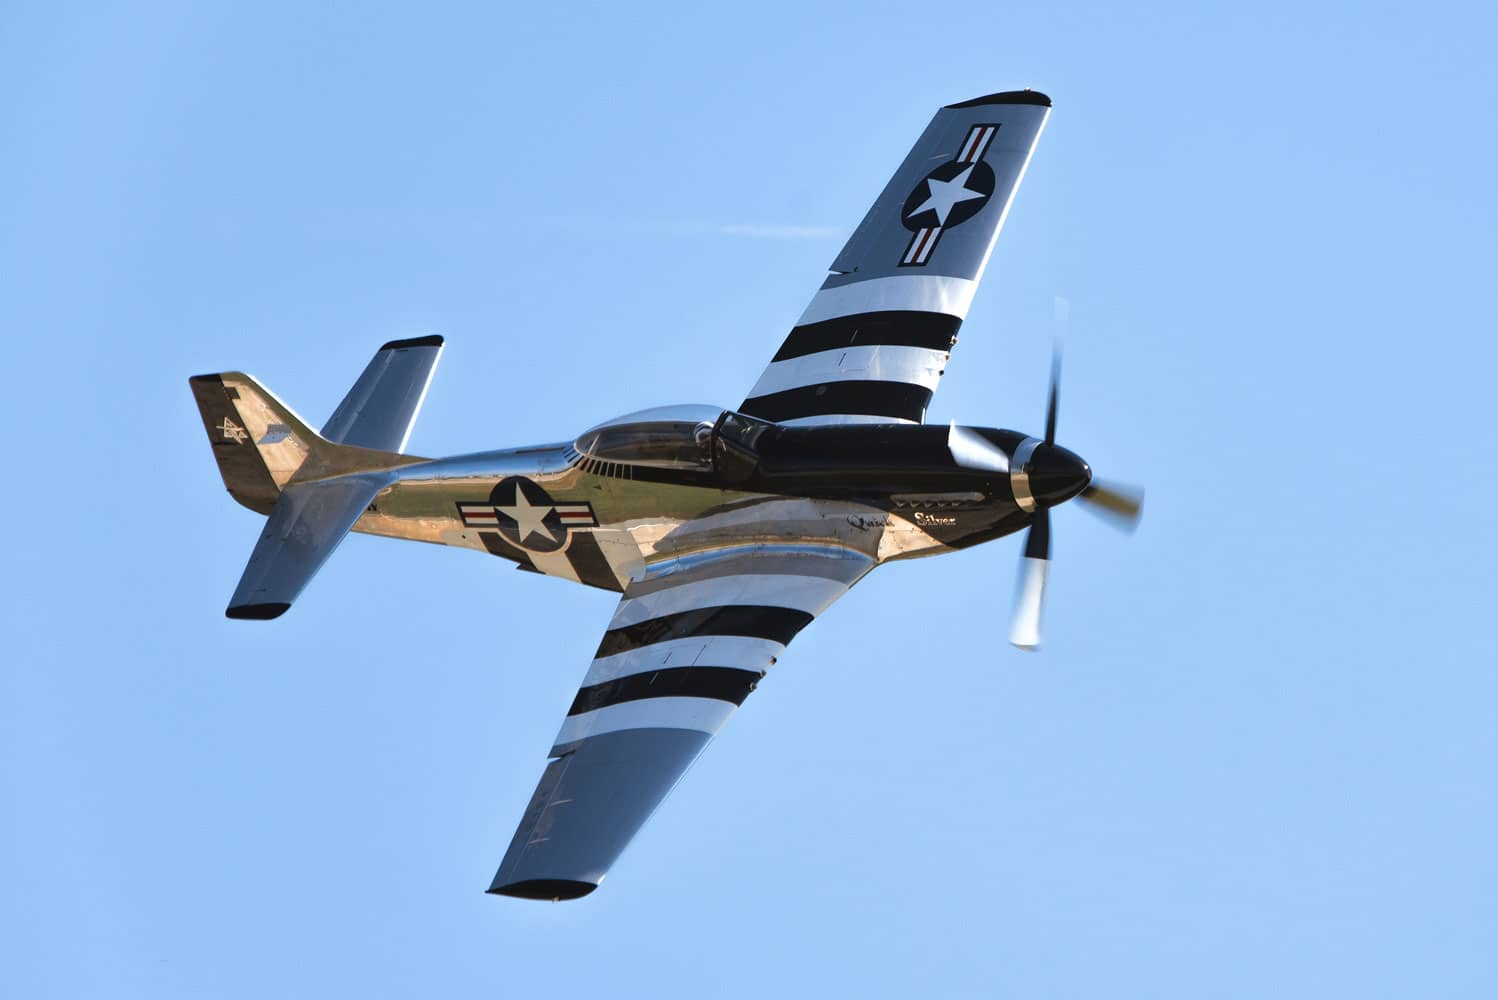 A QuickSilver P-51 Mustang flies over Joint Base Andrews, Md., during the 2017 Andrews Air Show: Air and Space Expo.